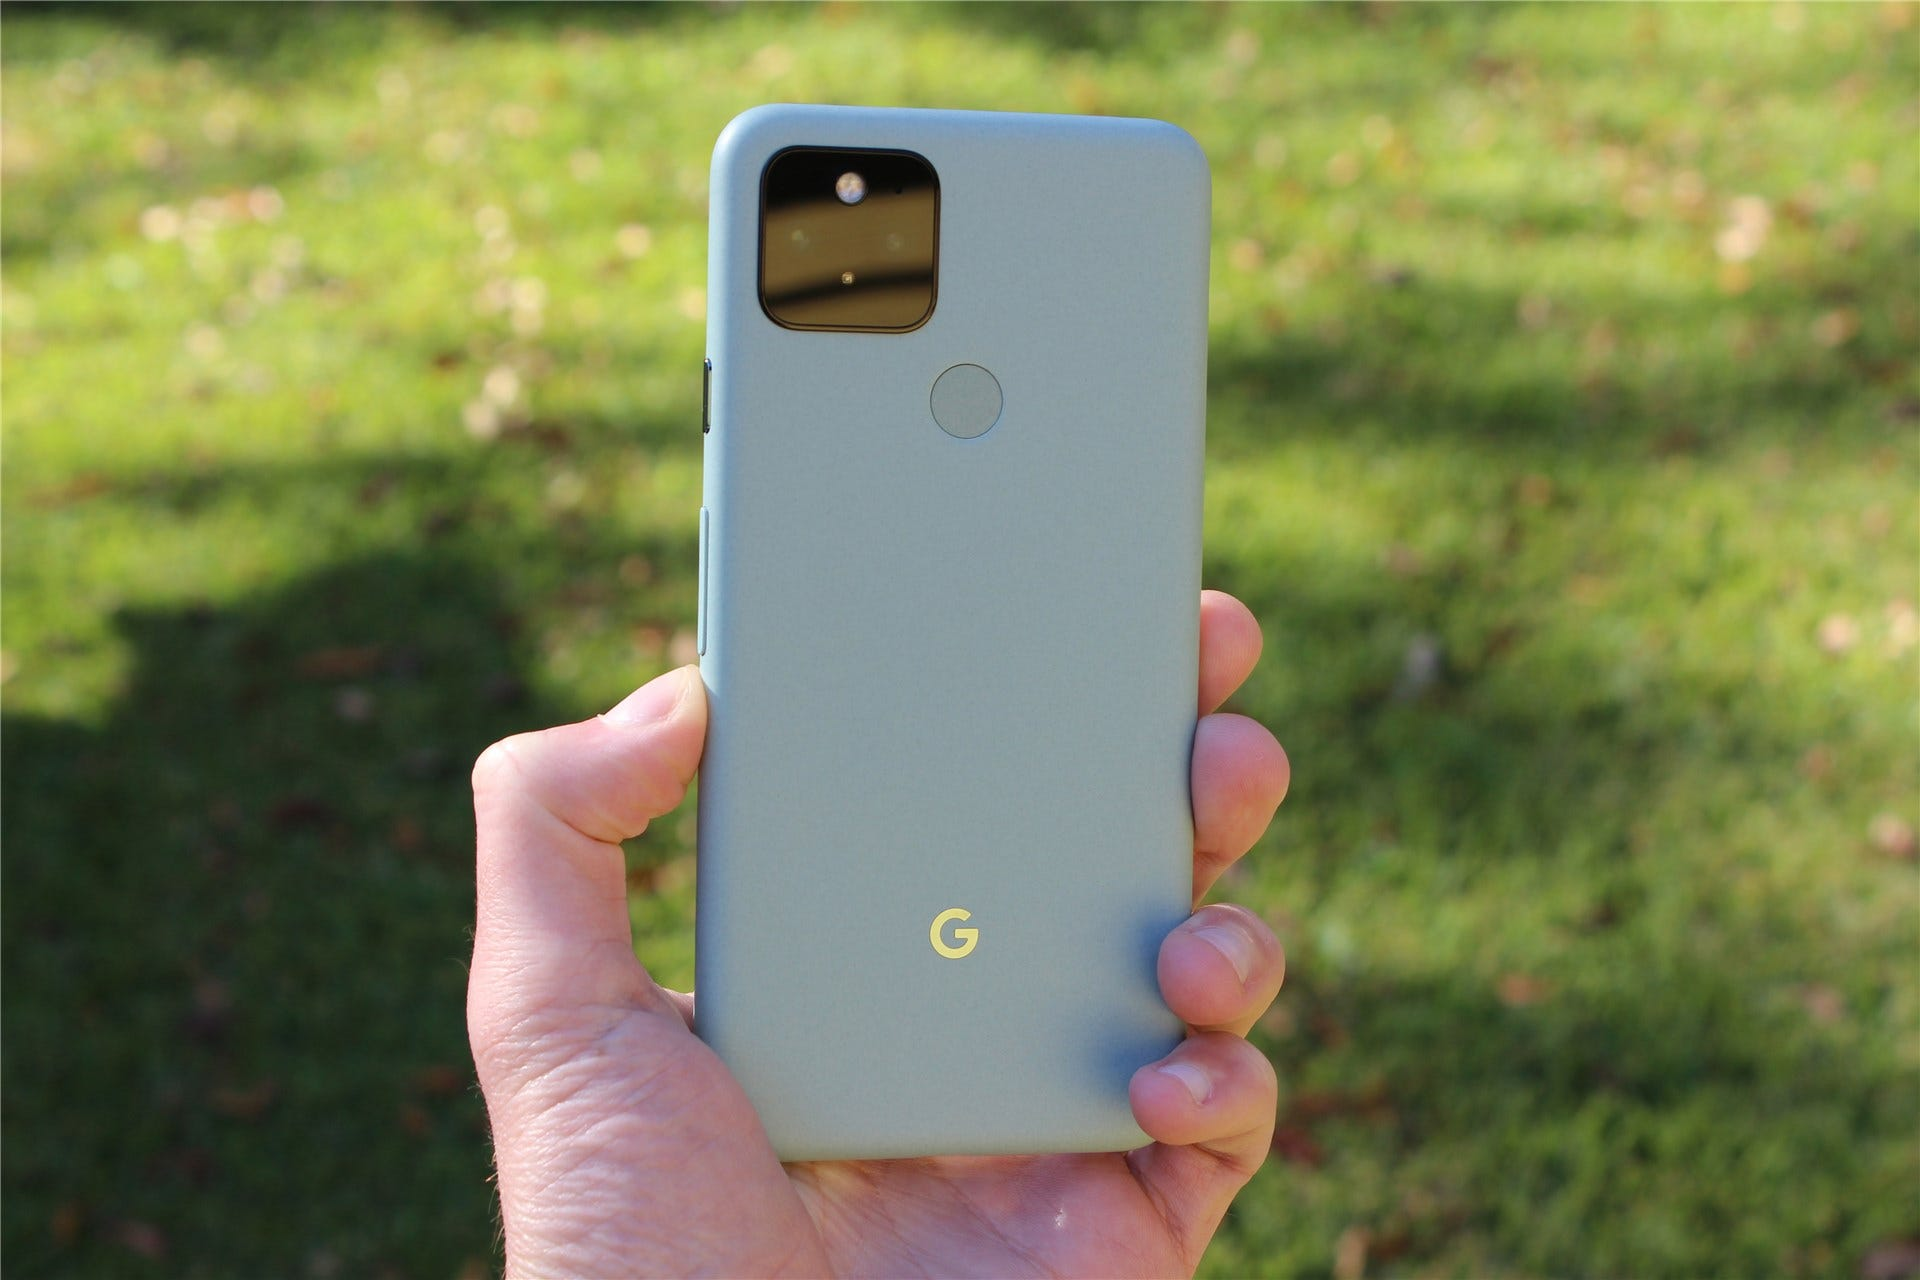 The Pixel 5 in Sage Green